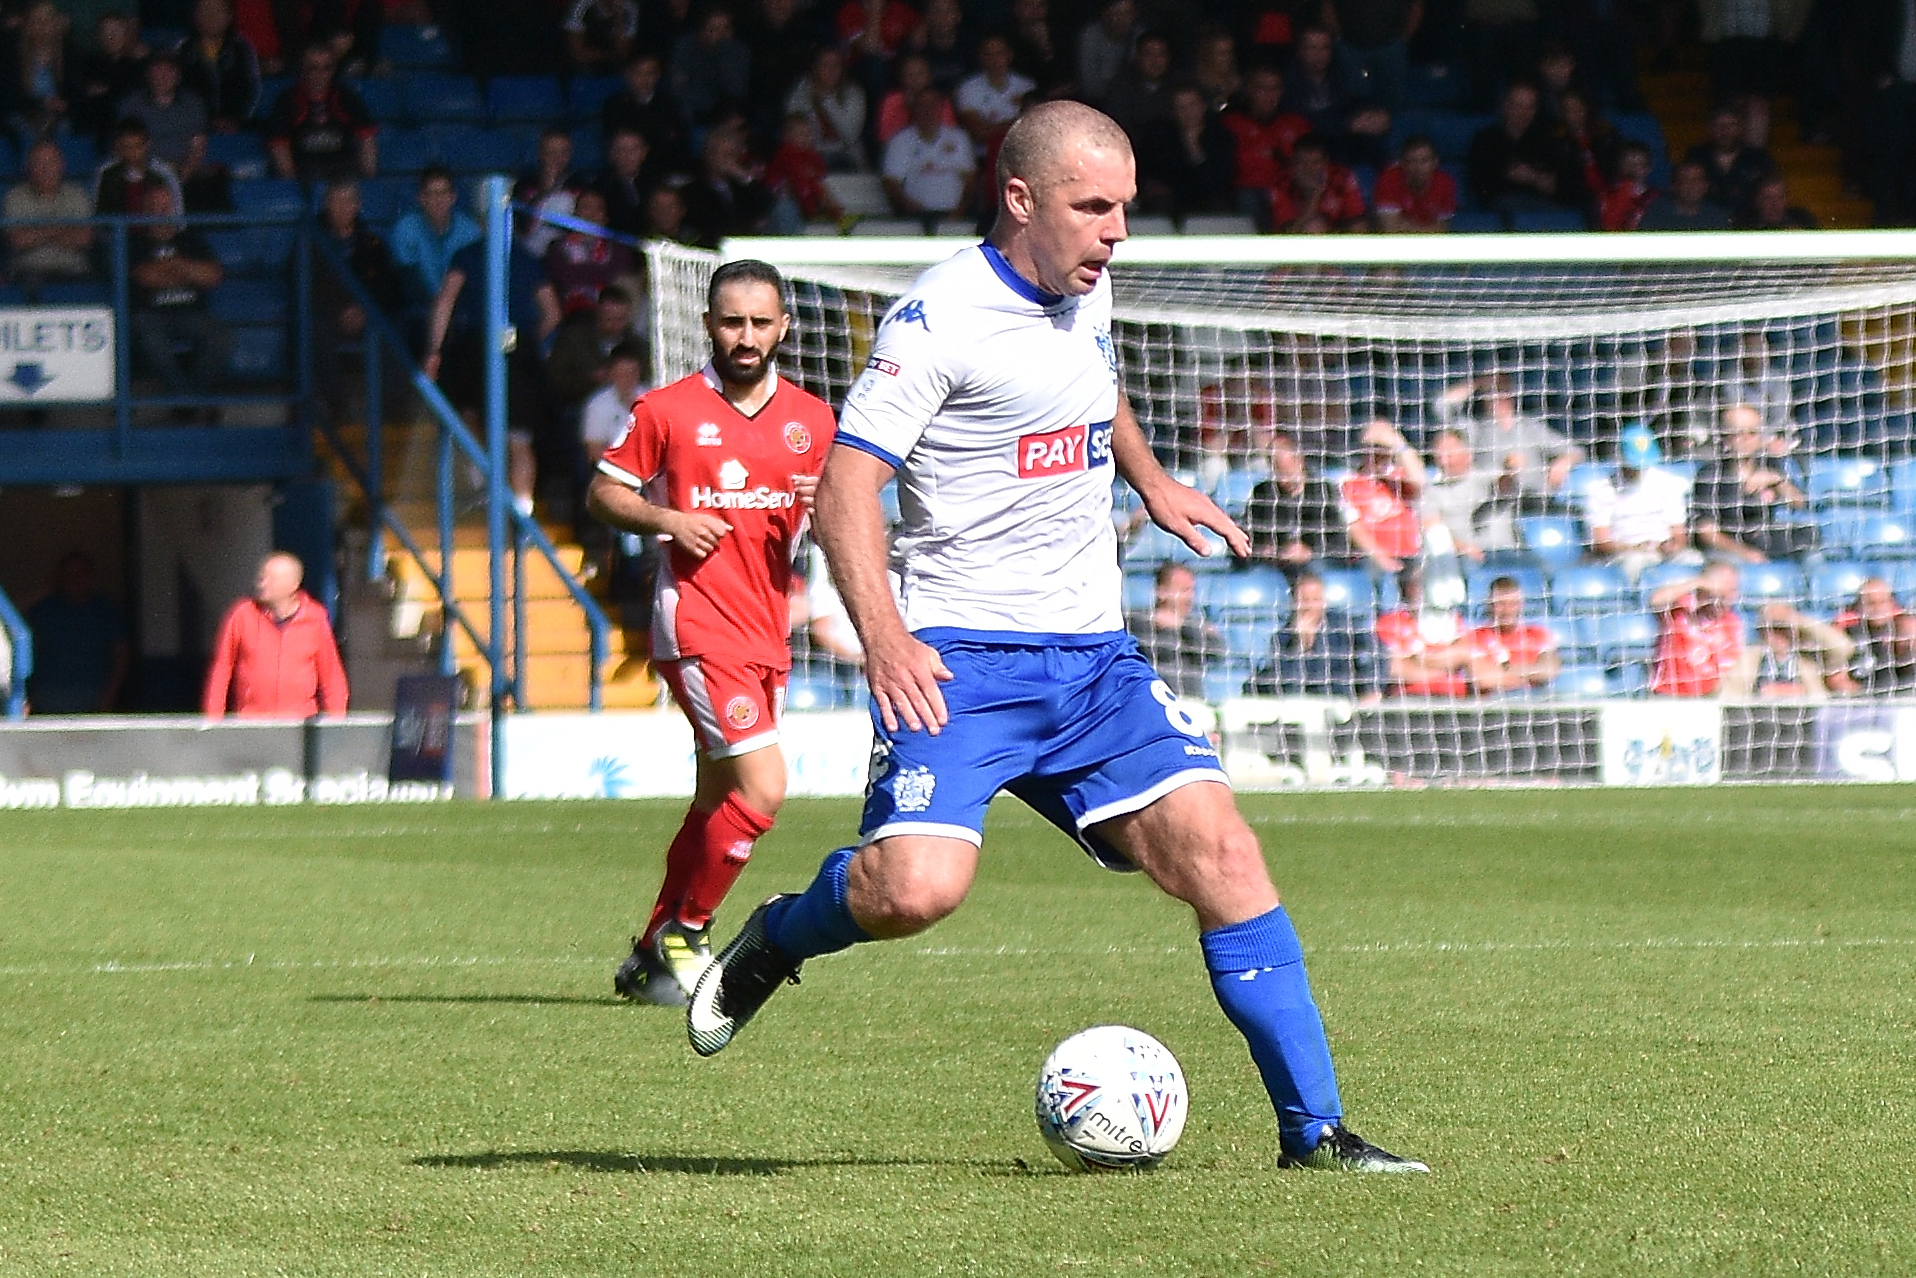 Stephen Dawson in Bury's first match of the season at home to Walsall